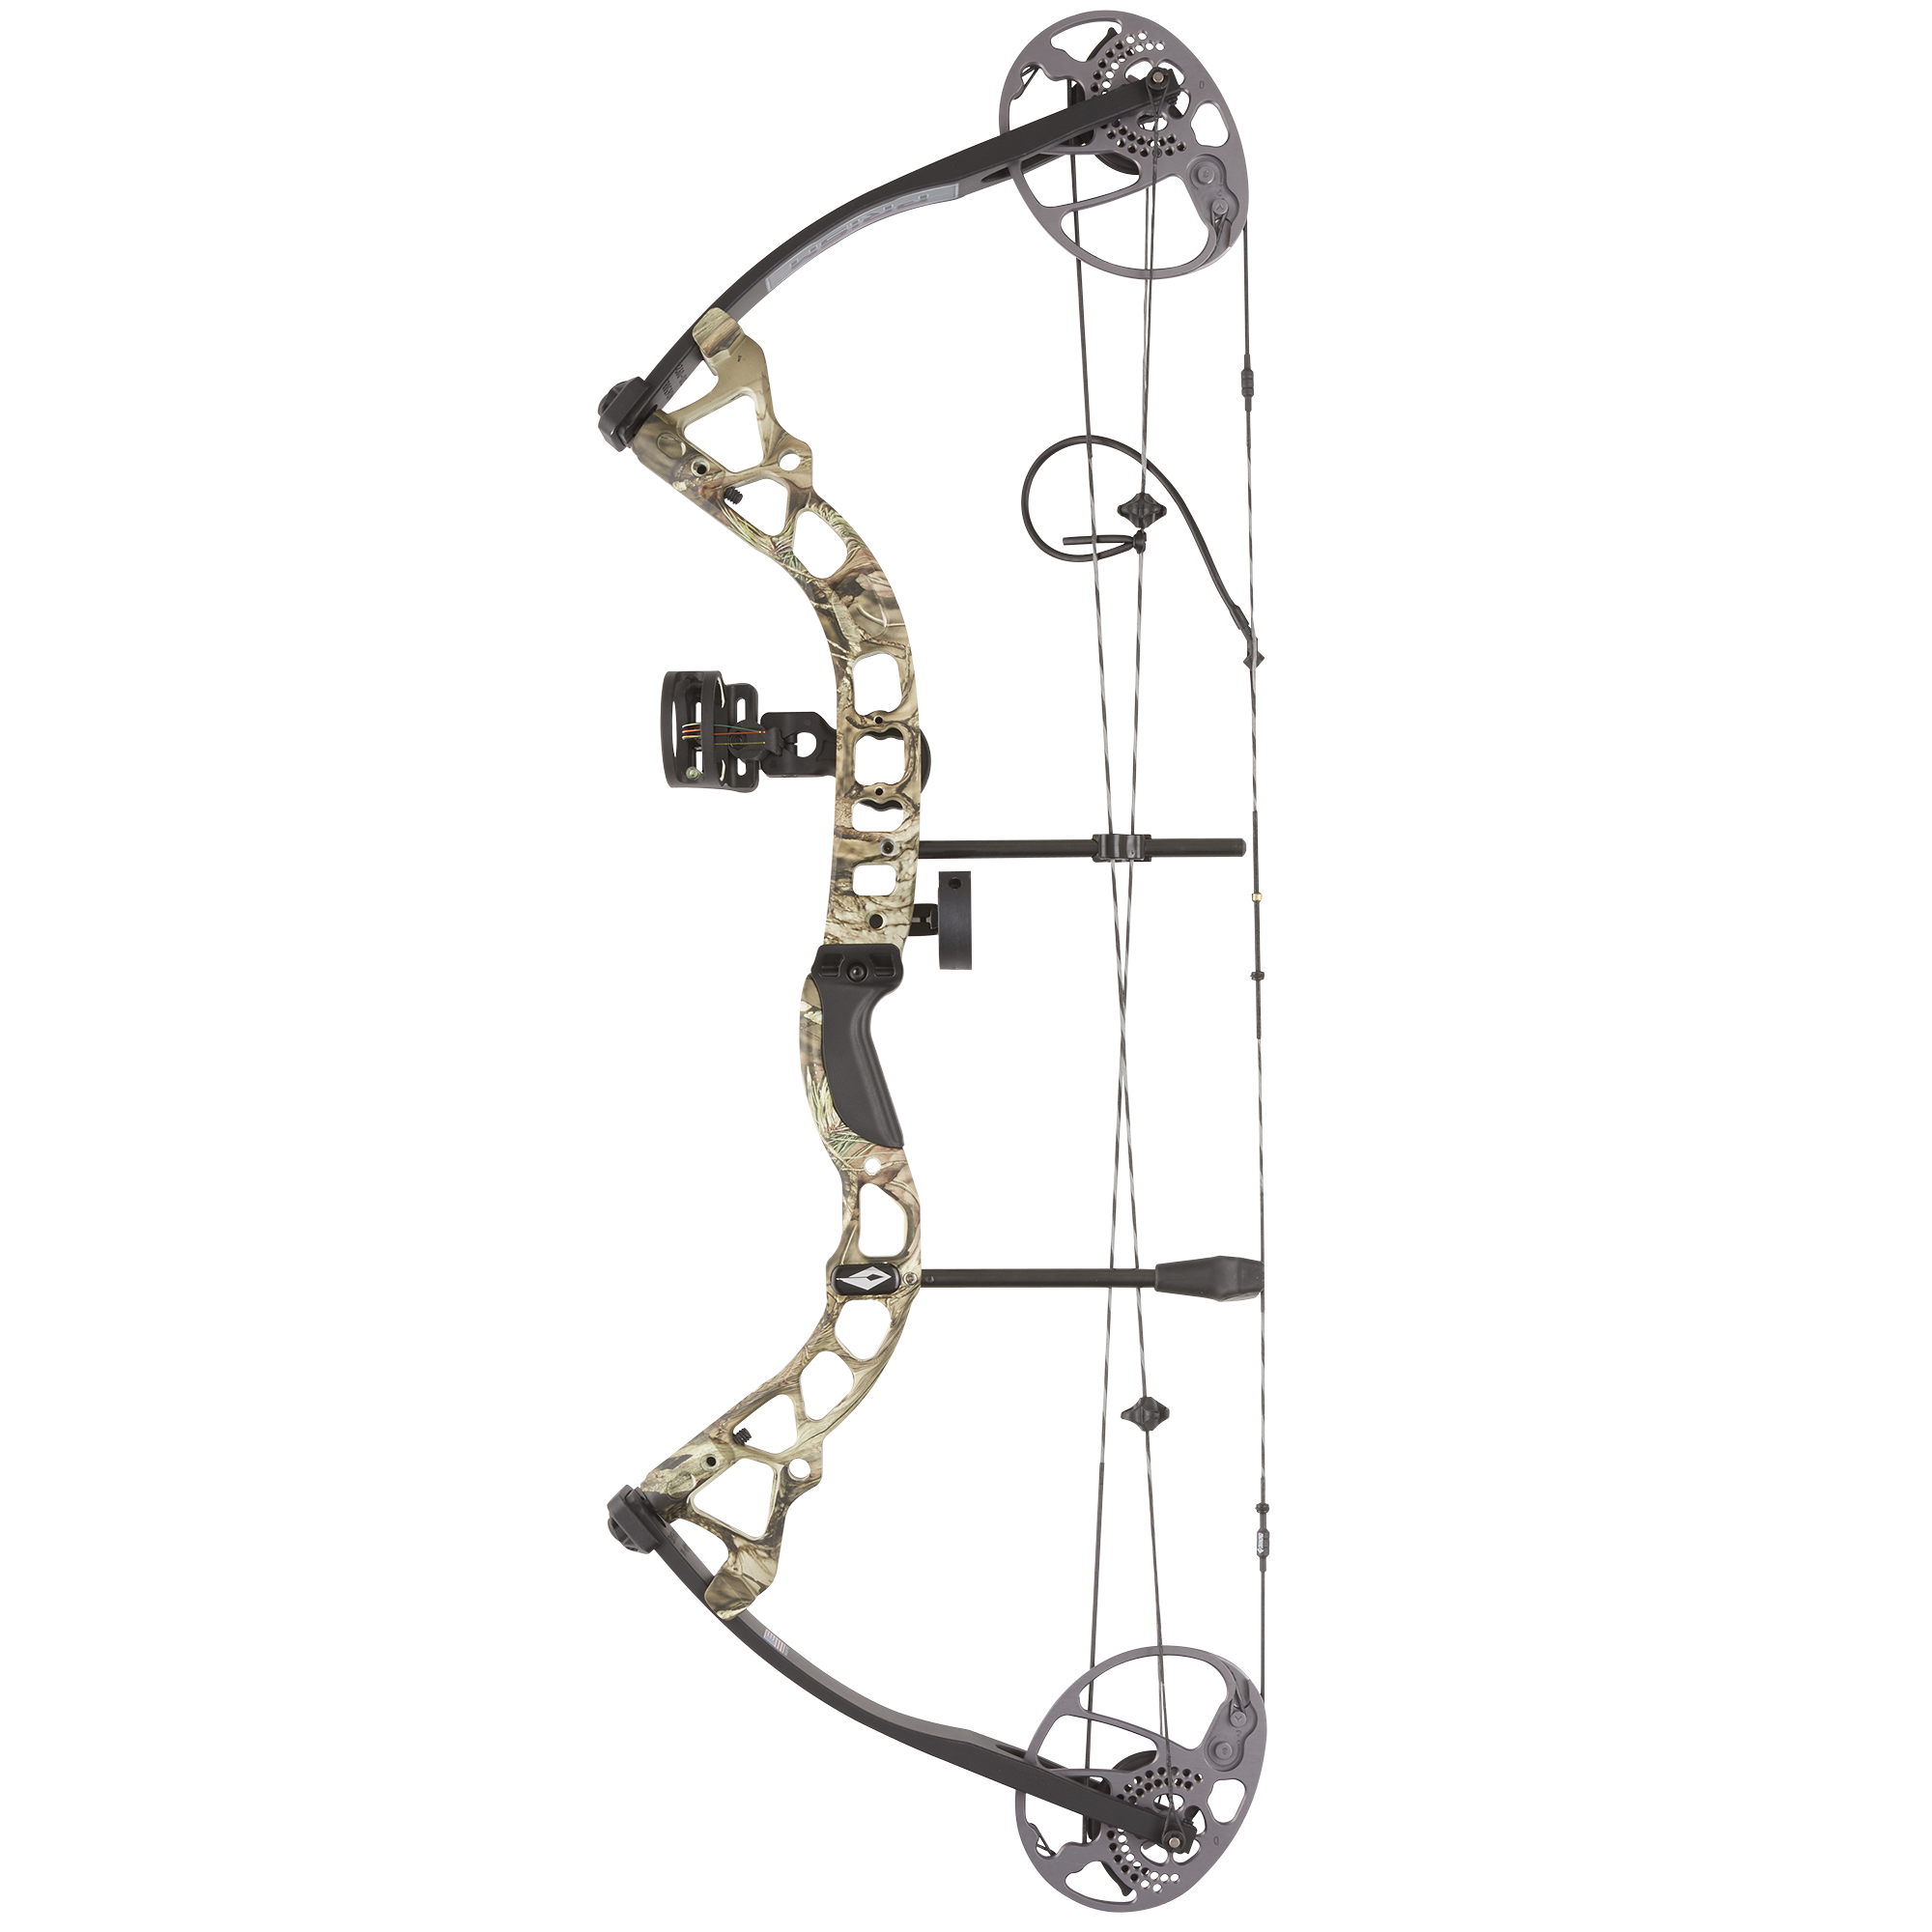 Diamond by Bowtech Prism Compound Bow, RH, Mossy Oak Break-Up Country (847019084061 Hunting Archery Bows Compound Bows) photo